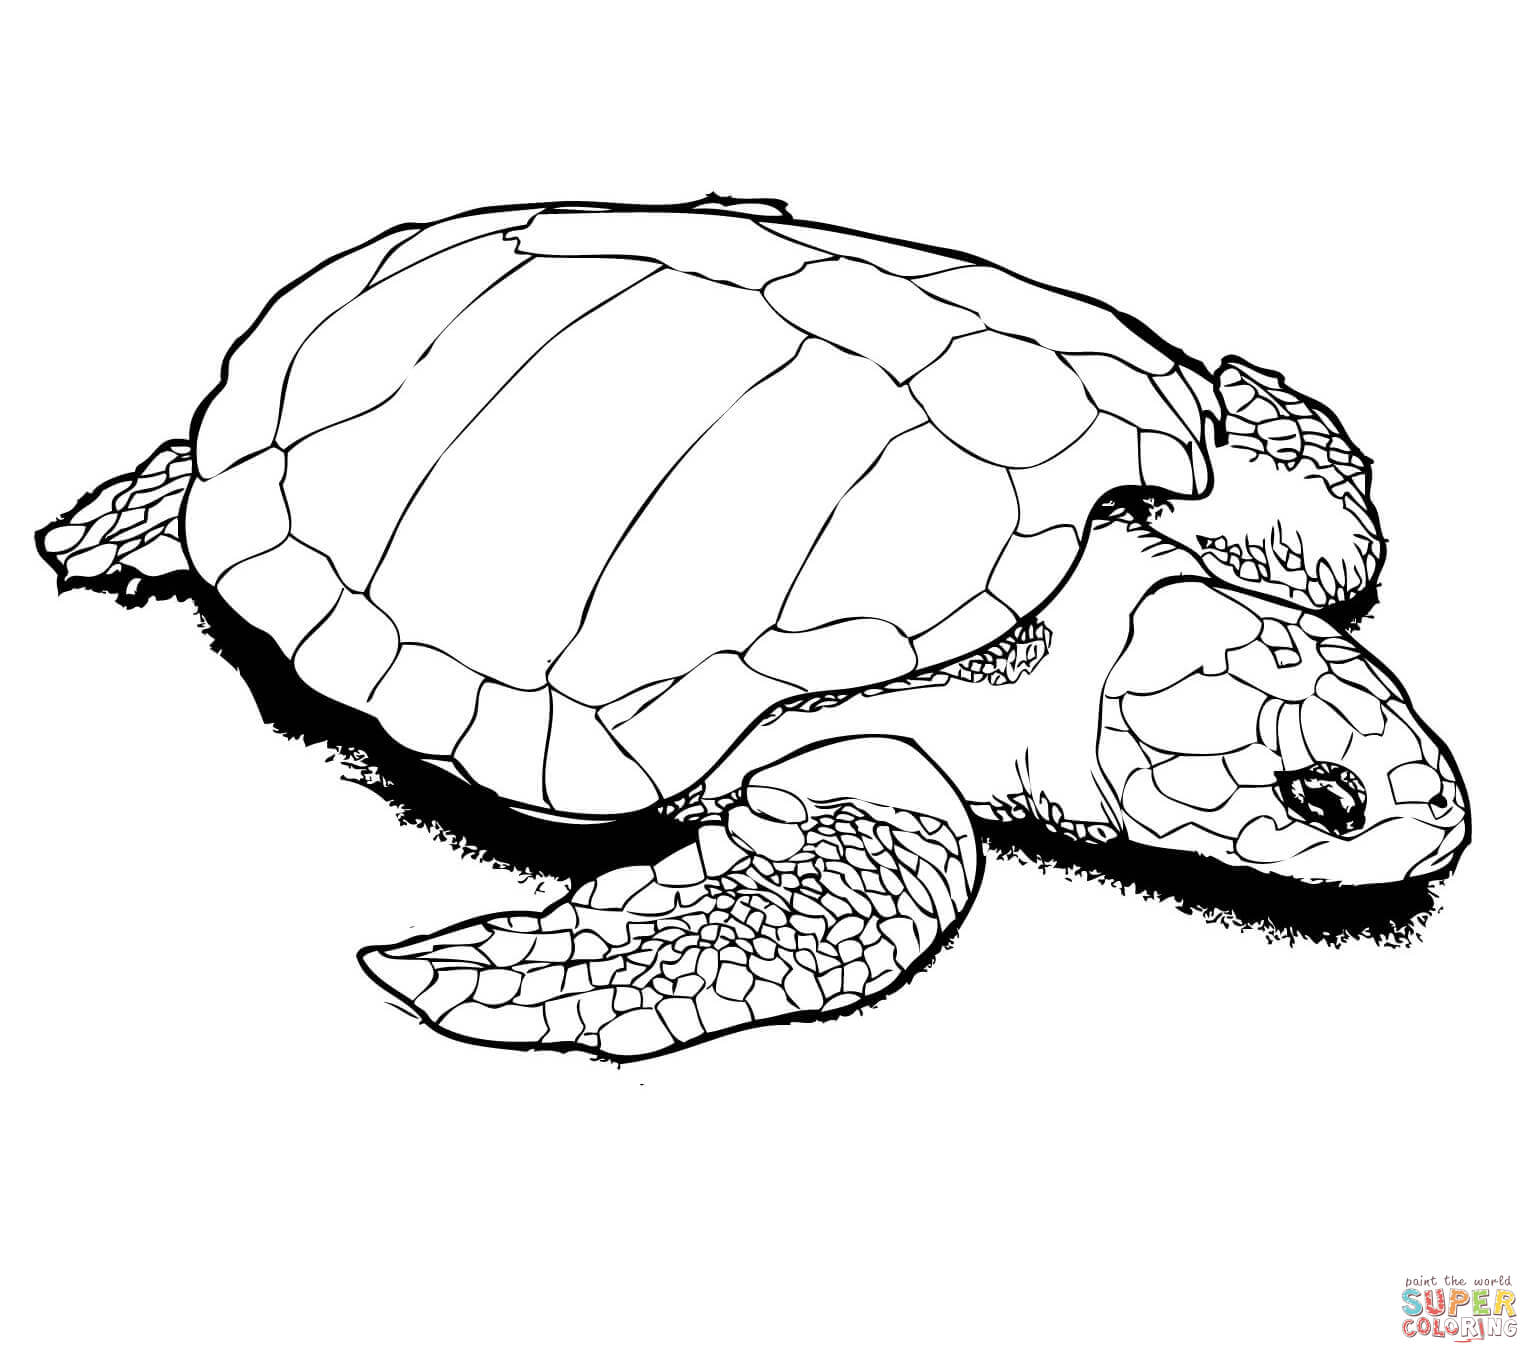 turtle coloring book page turtles to print turtles kids coloring pages turtle book coloring page